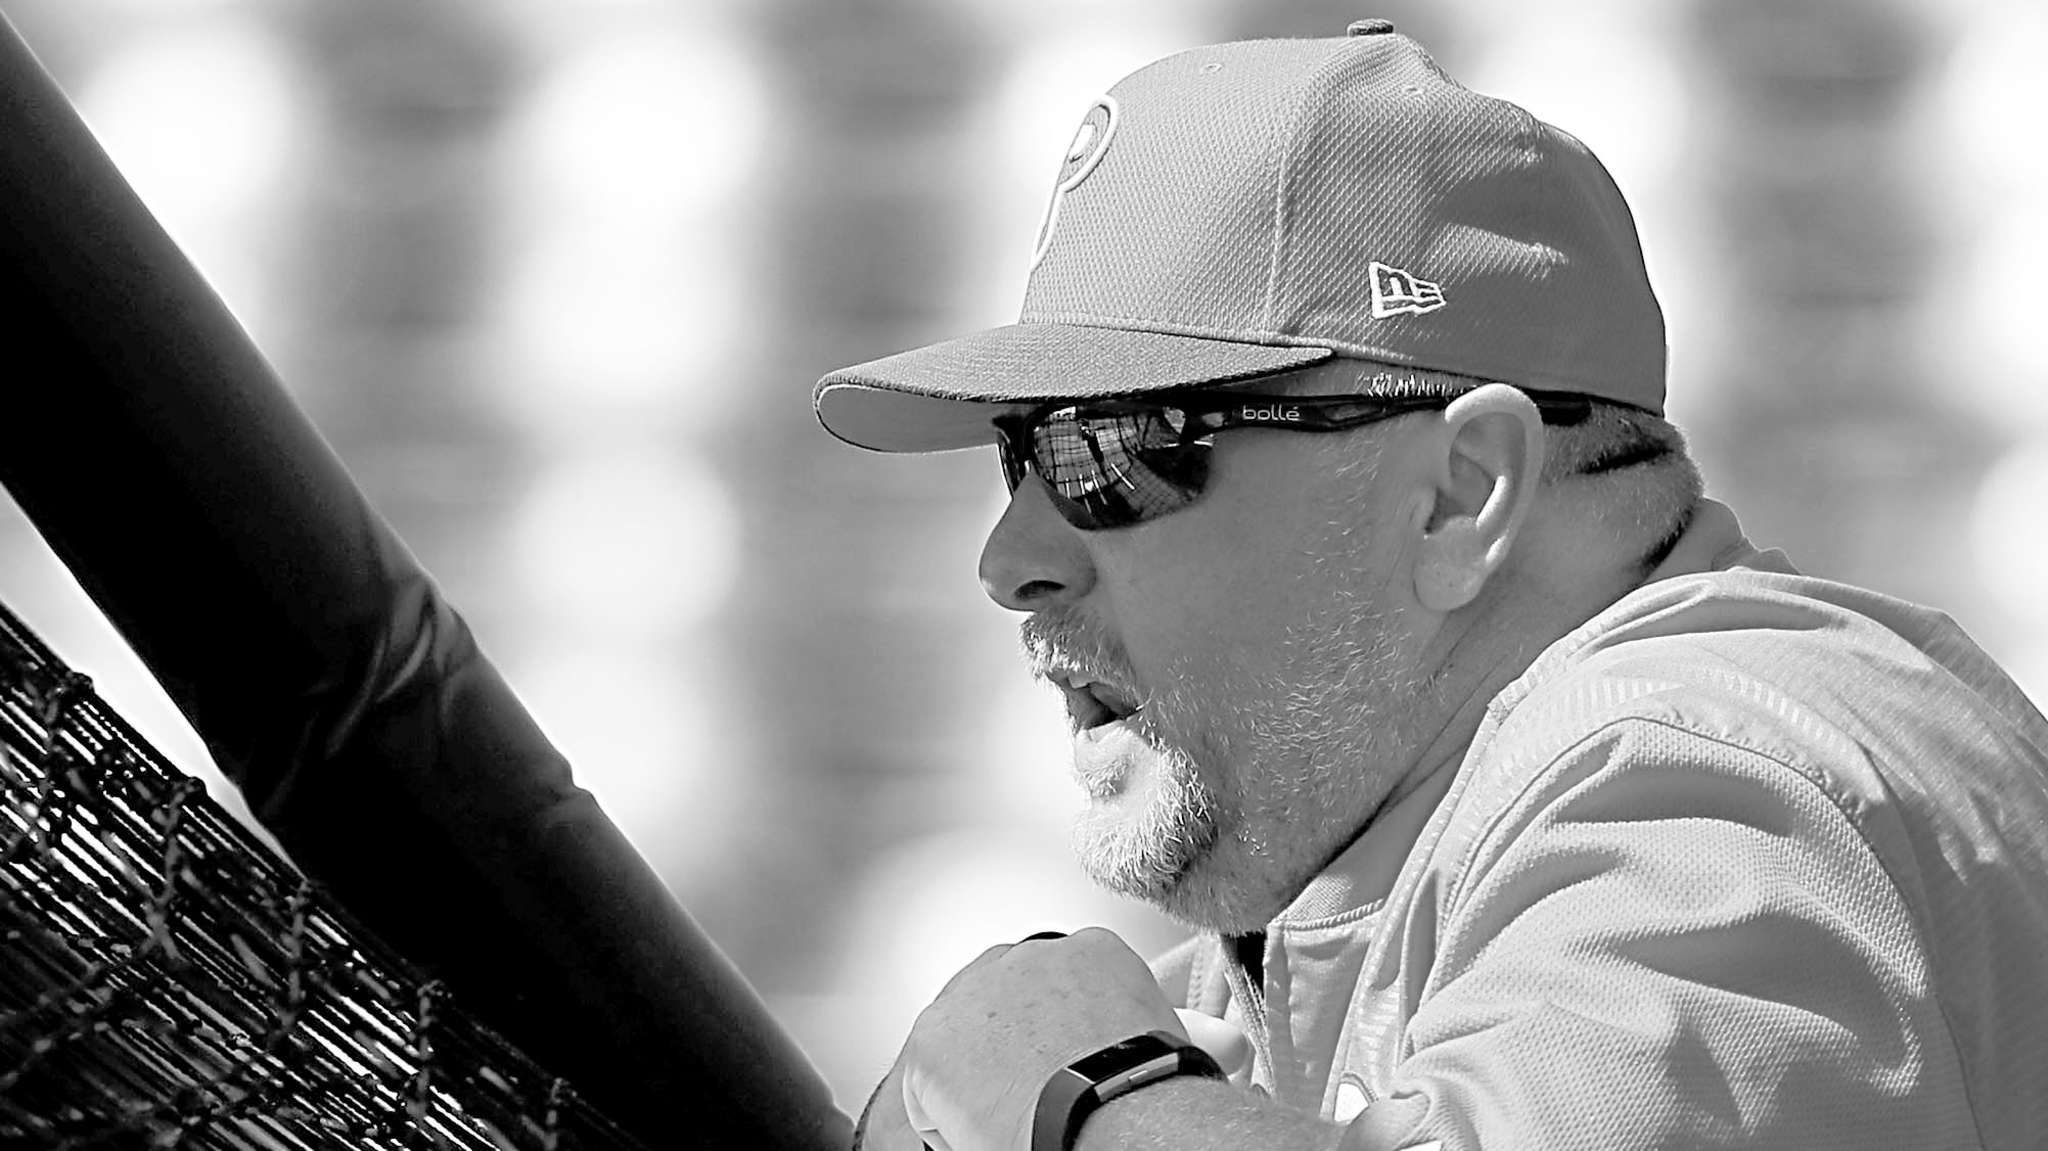 Matt Stairs is the Phillies´ new batting coach. Dusty Wathan and Sal Rende will work with the triple-A prospects.